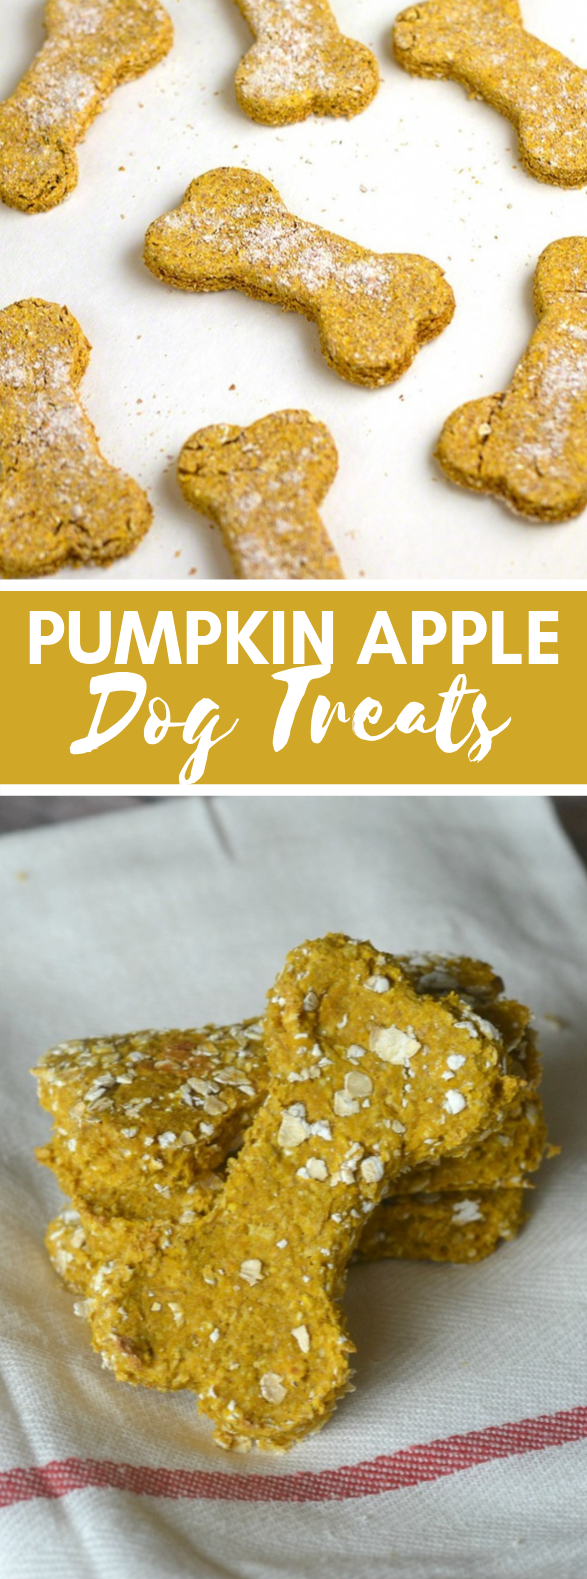 Pumpkin Apple Dog Treats #desserts #fallrecipes